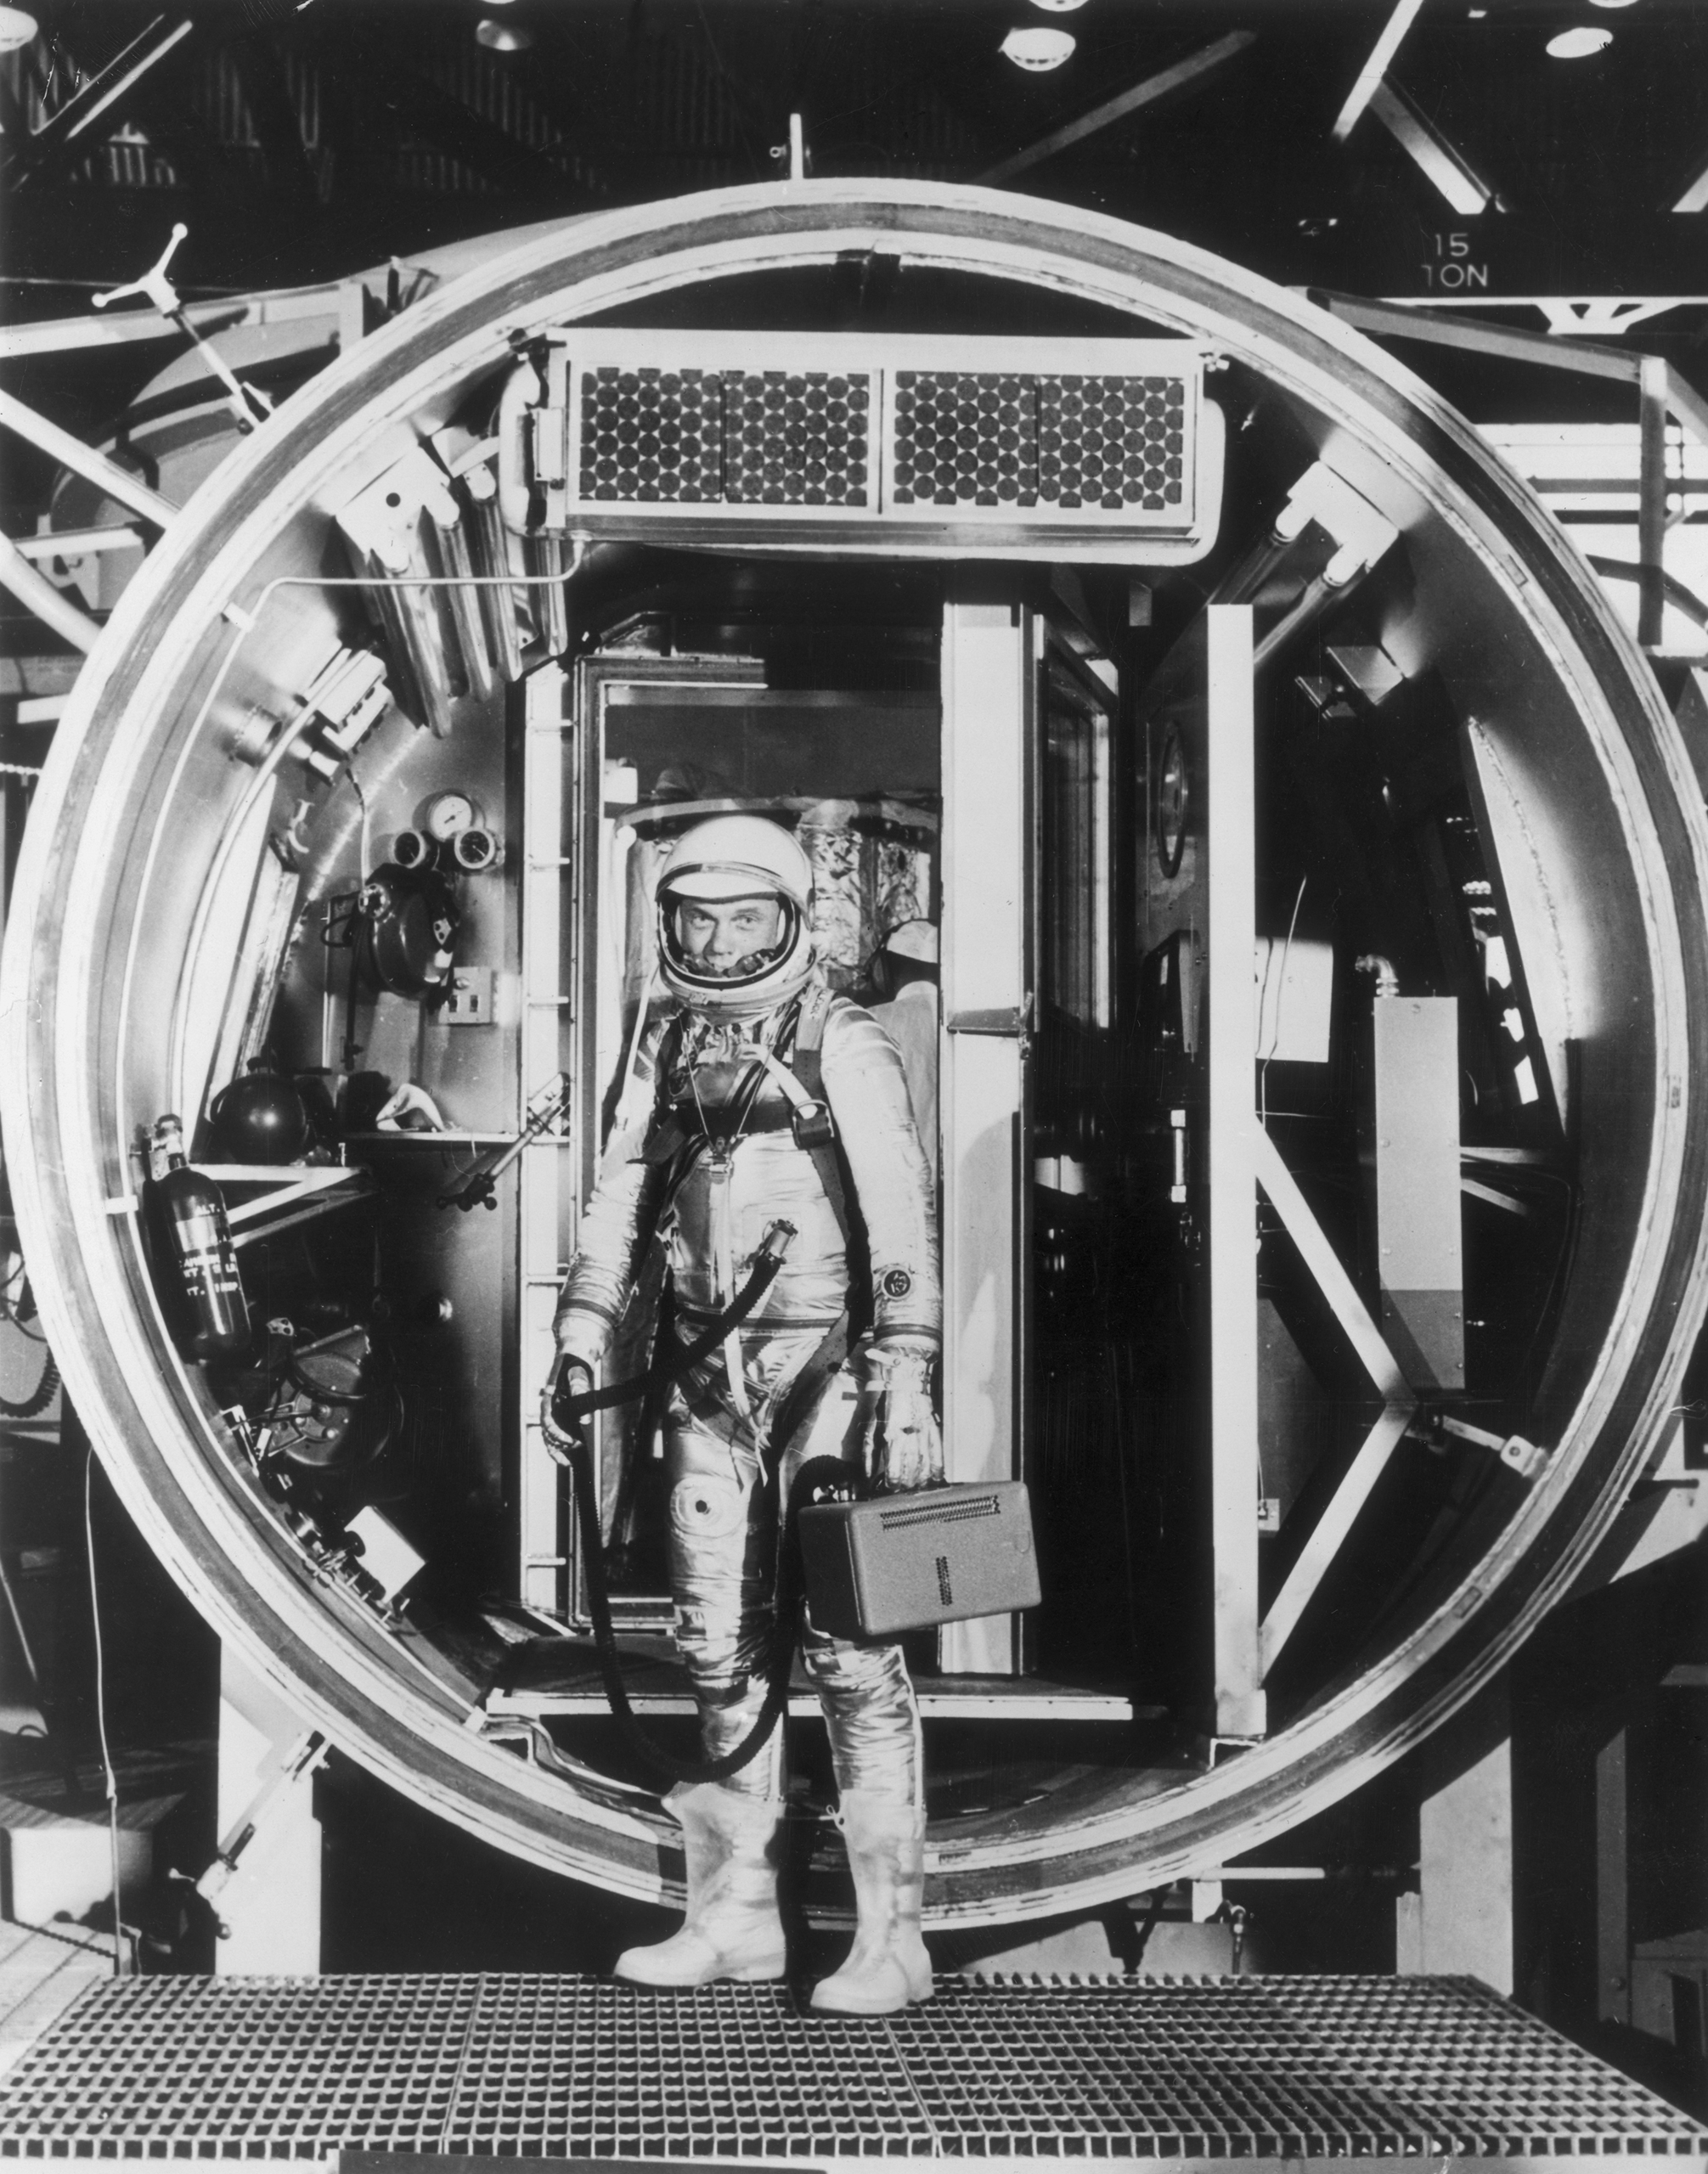 <b>High-Tech Testing</b> Glenn, in 1962, in a fully pressurized suit, prepares to enter an altitude chamber, which simulates air pressure at various stages of flight.